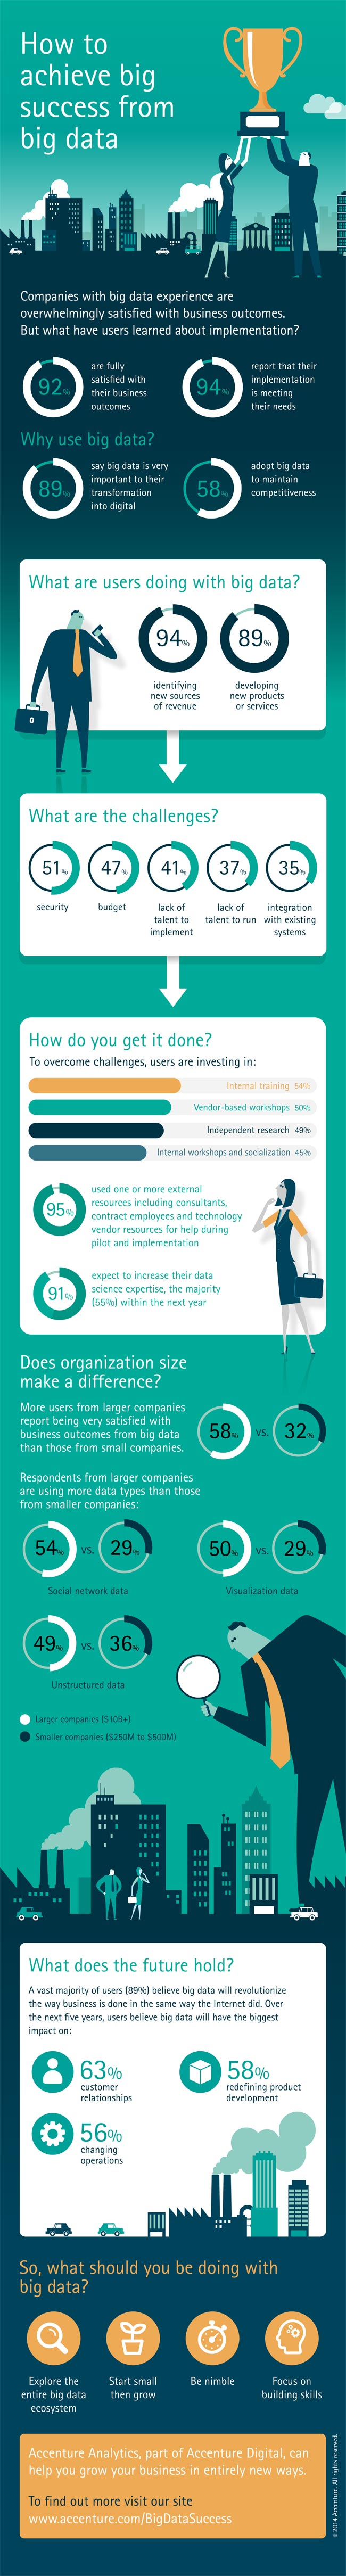 Accenture-Big-Data-Research-Infographic